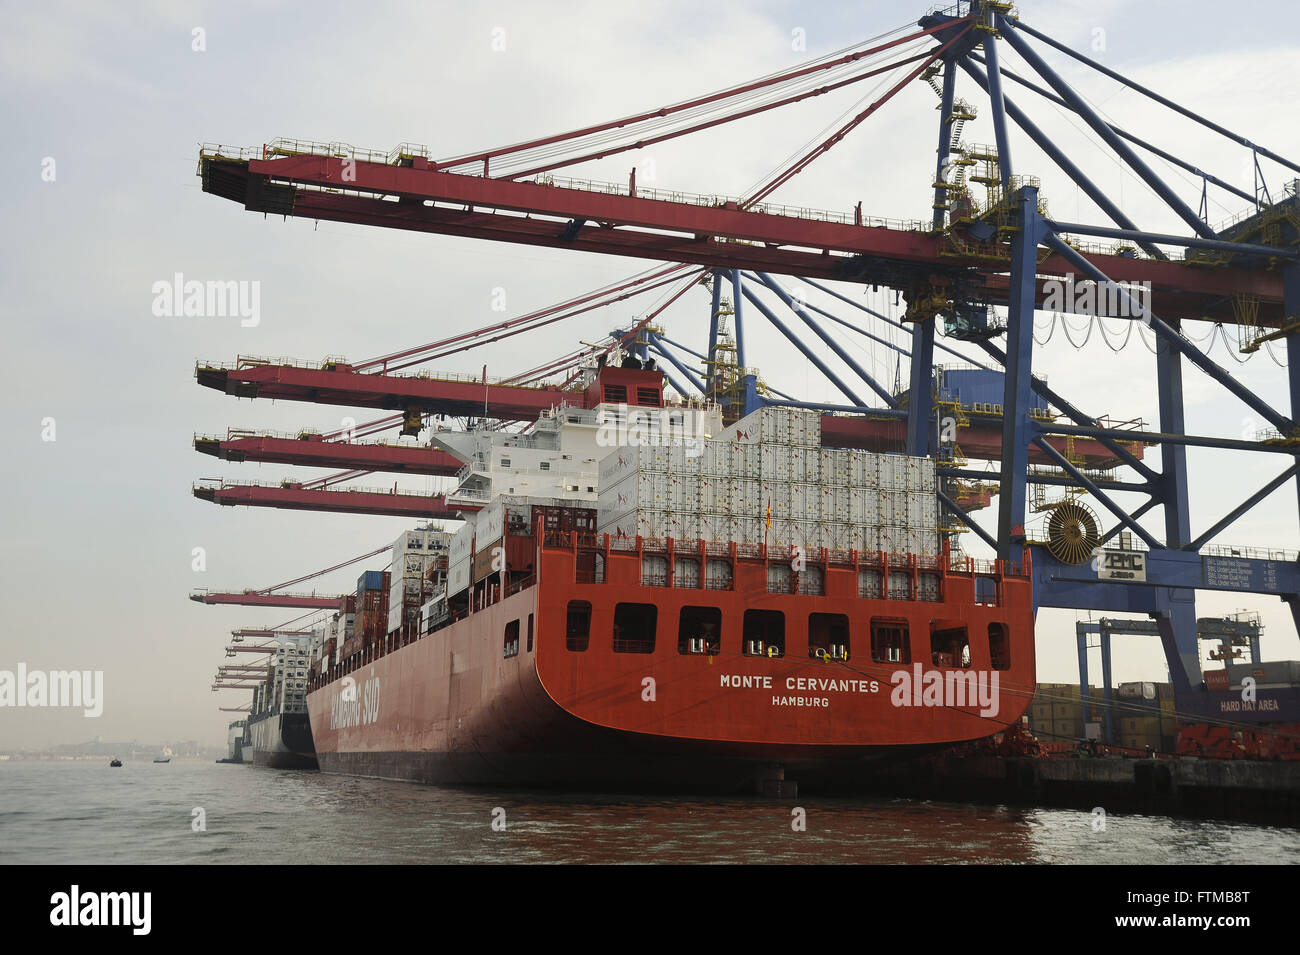 Cargo ship being loaded at the Port of Santos Stock Photo